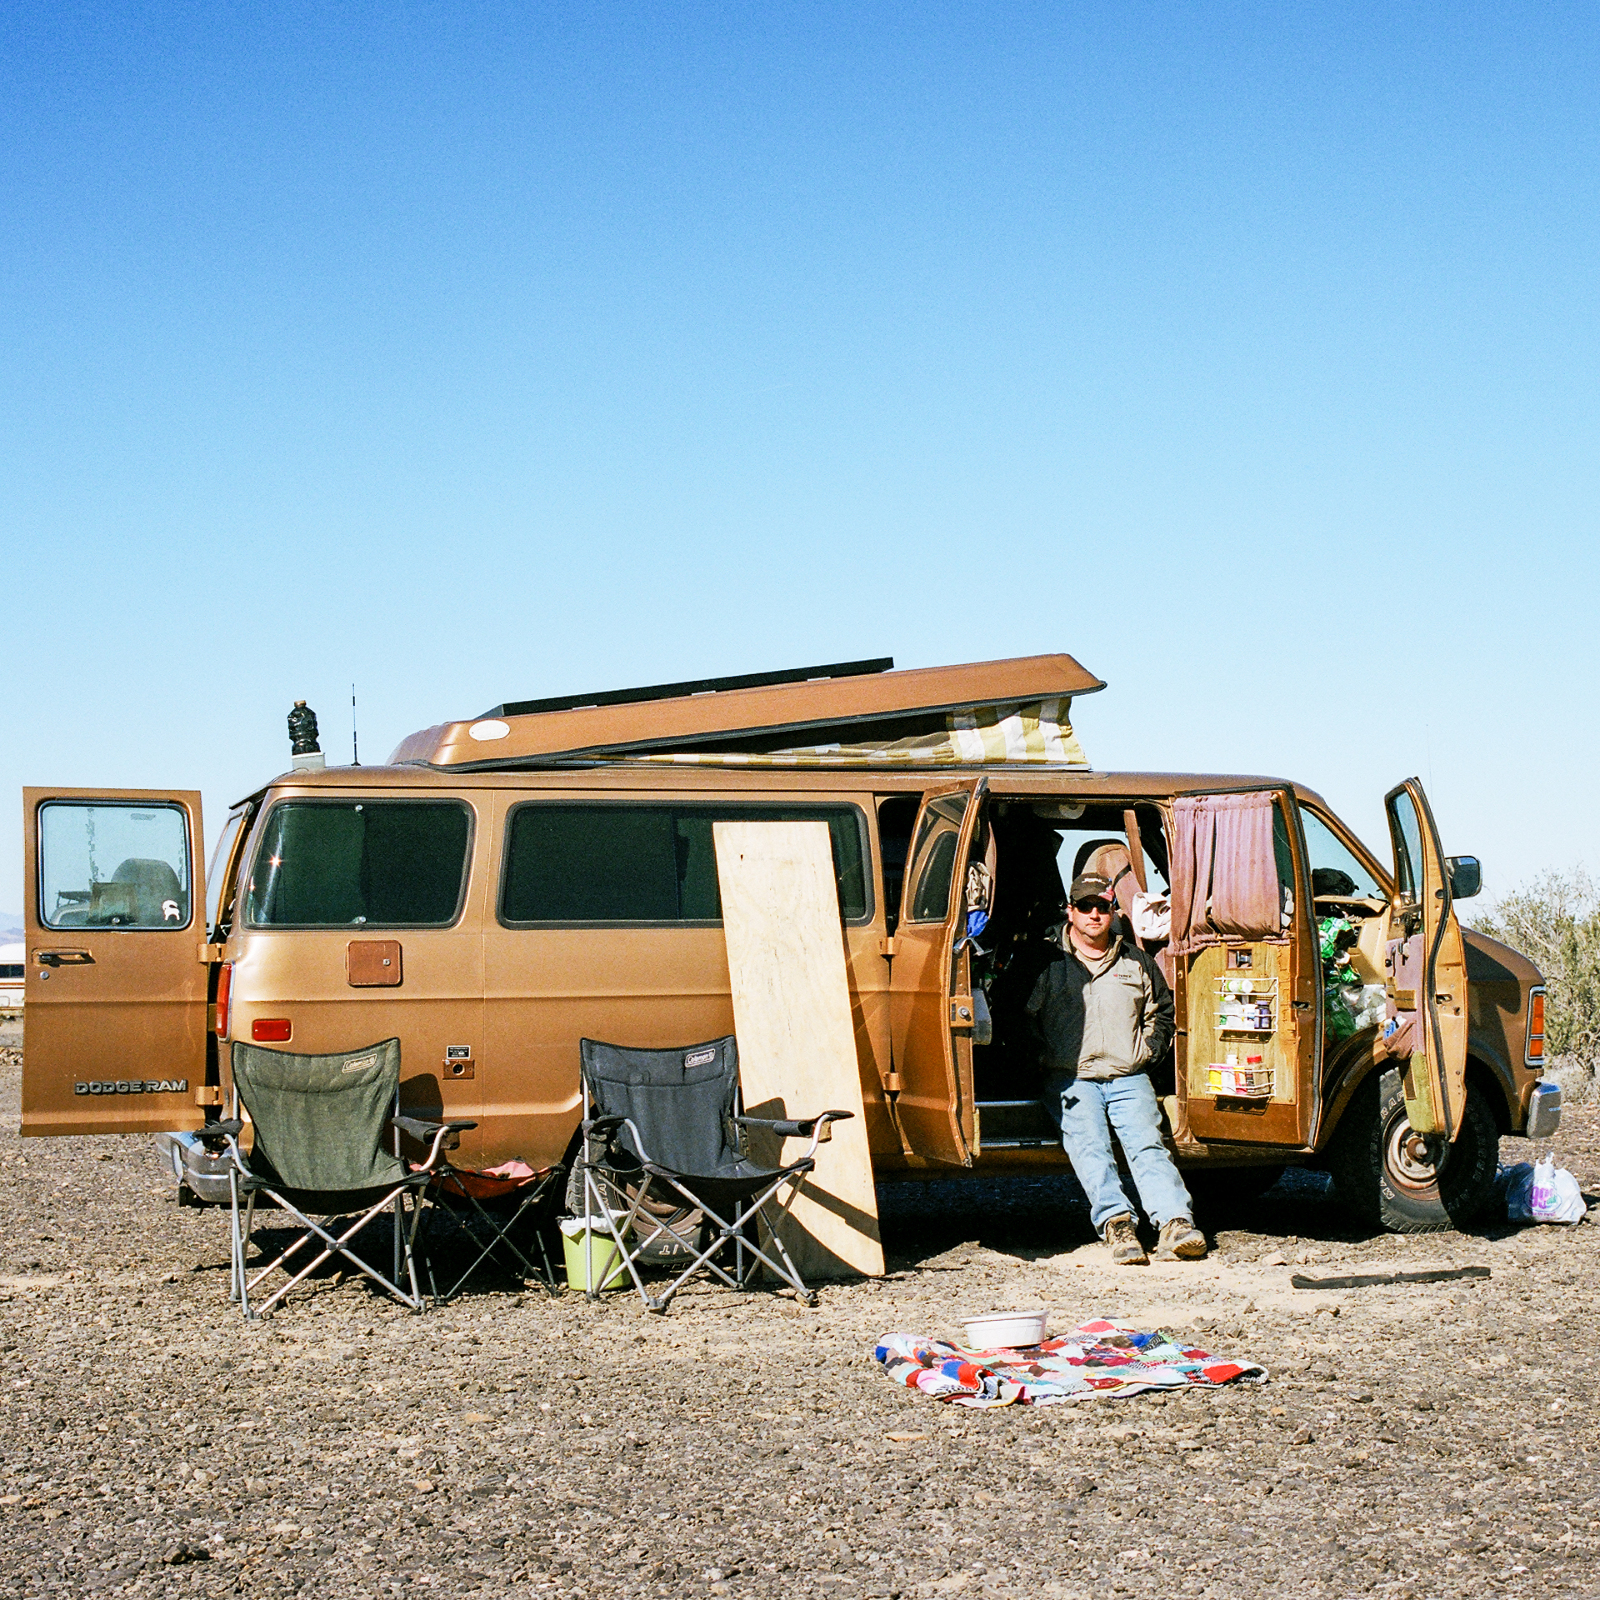 Ryan Berg, Quartzsite, Arizona, 2013